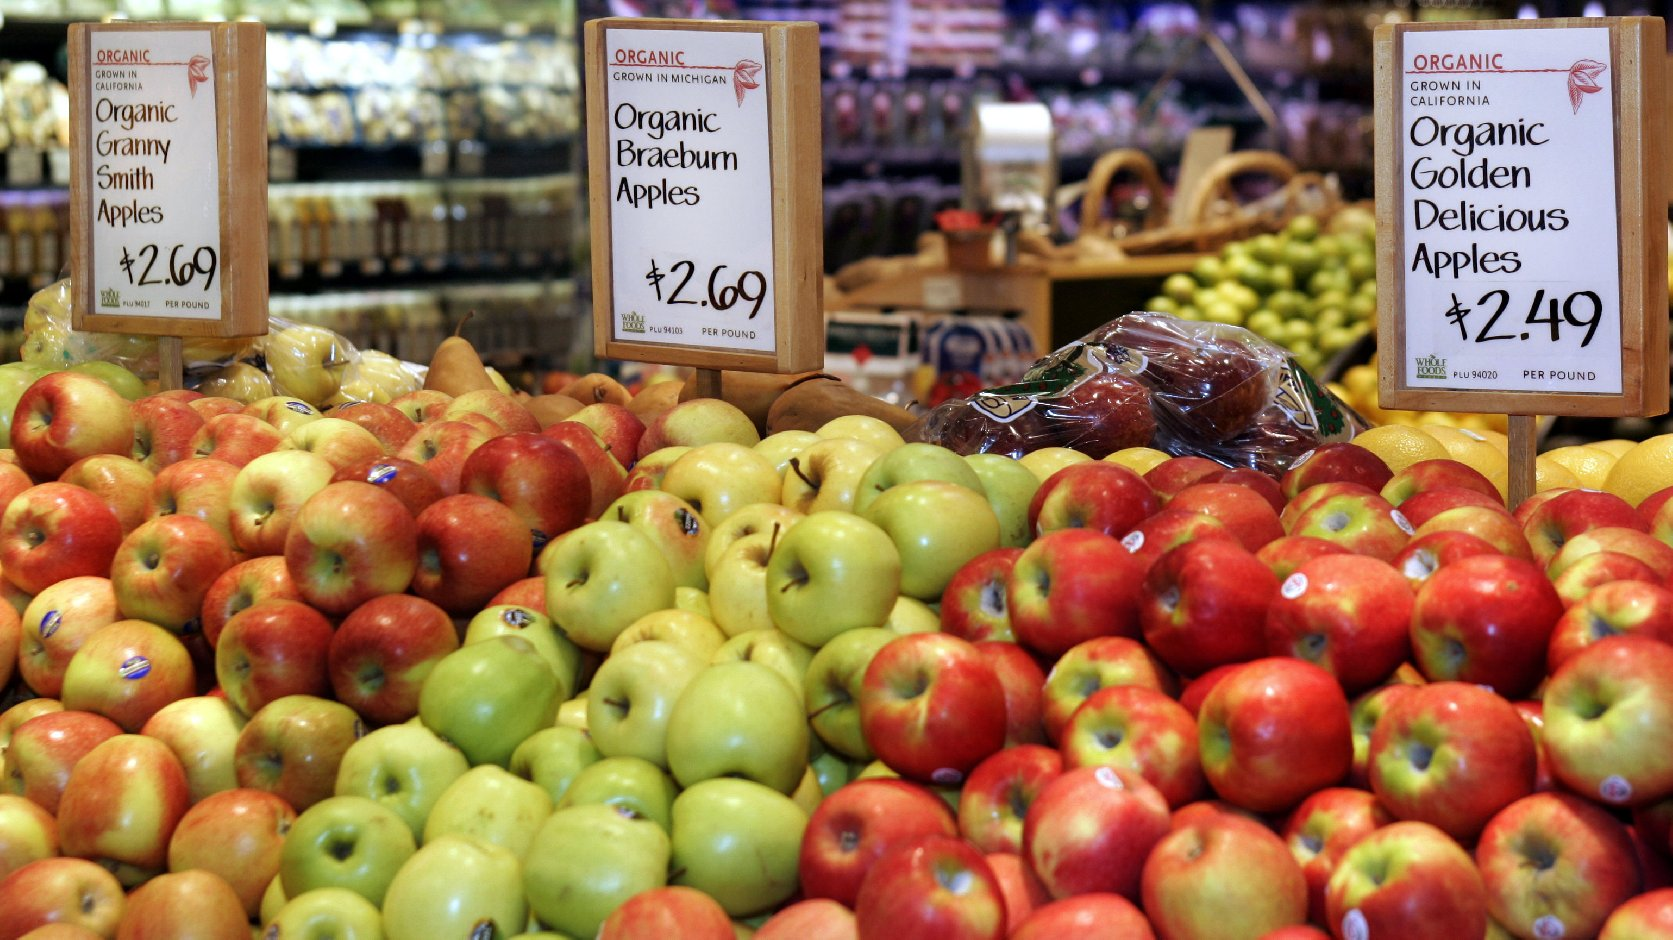 The National Organic Standards Board voted to no longer allow farmers to use the antibiotic streptomycin on organic apple and pear trees. Photo: Jeff Haynes/AFP/Getty Images